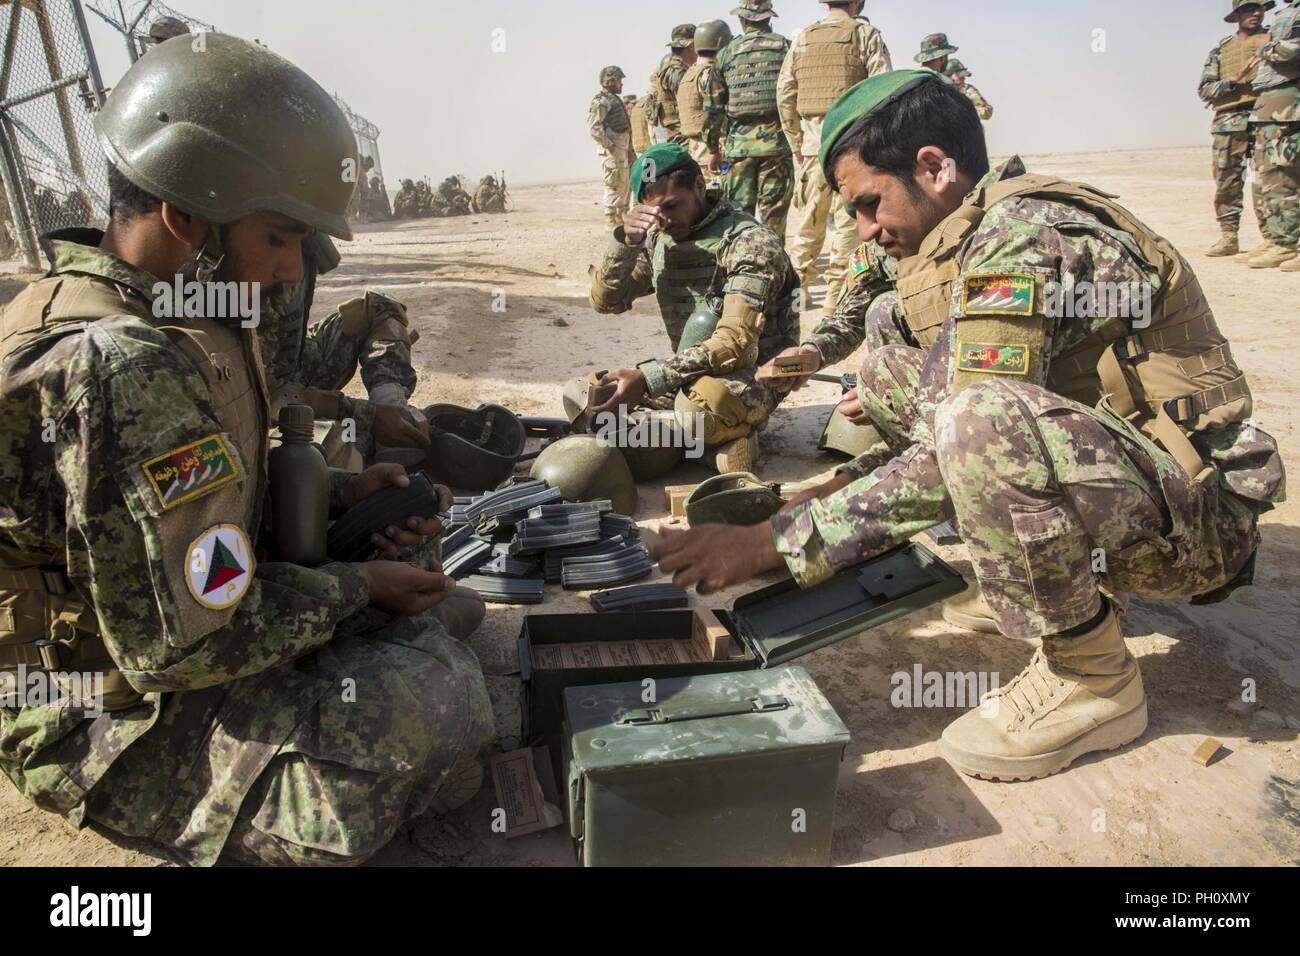 HELMAND PROVINCE, Afghanistan (June 20, 2018) - Afghan National Army